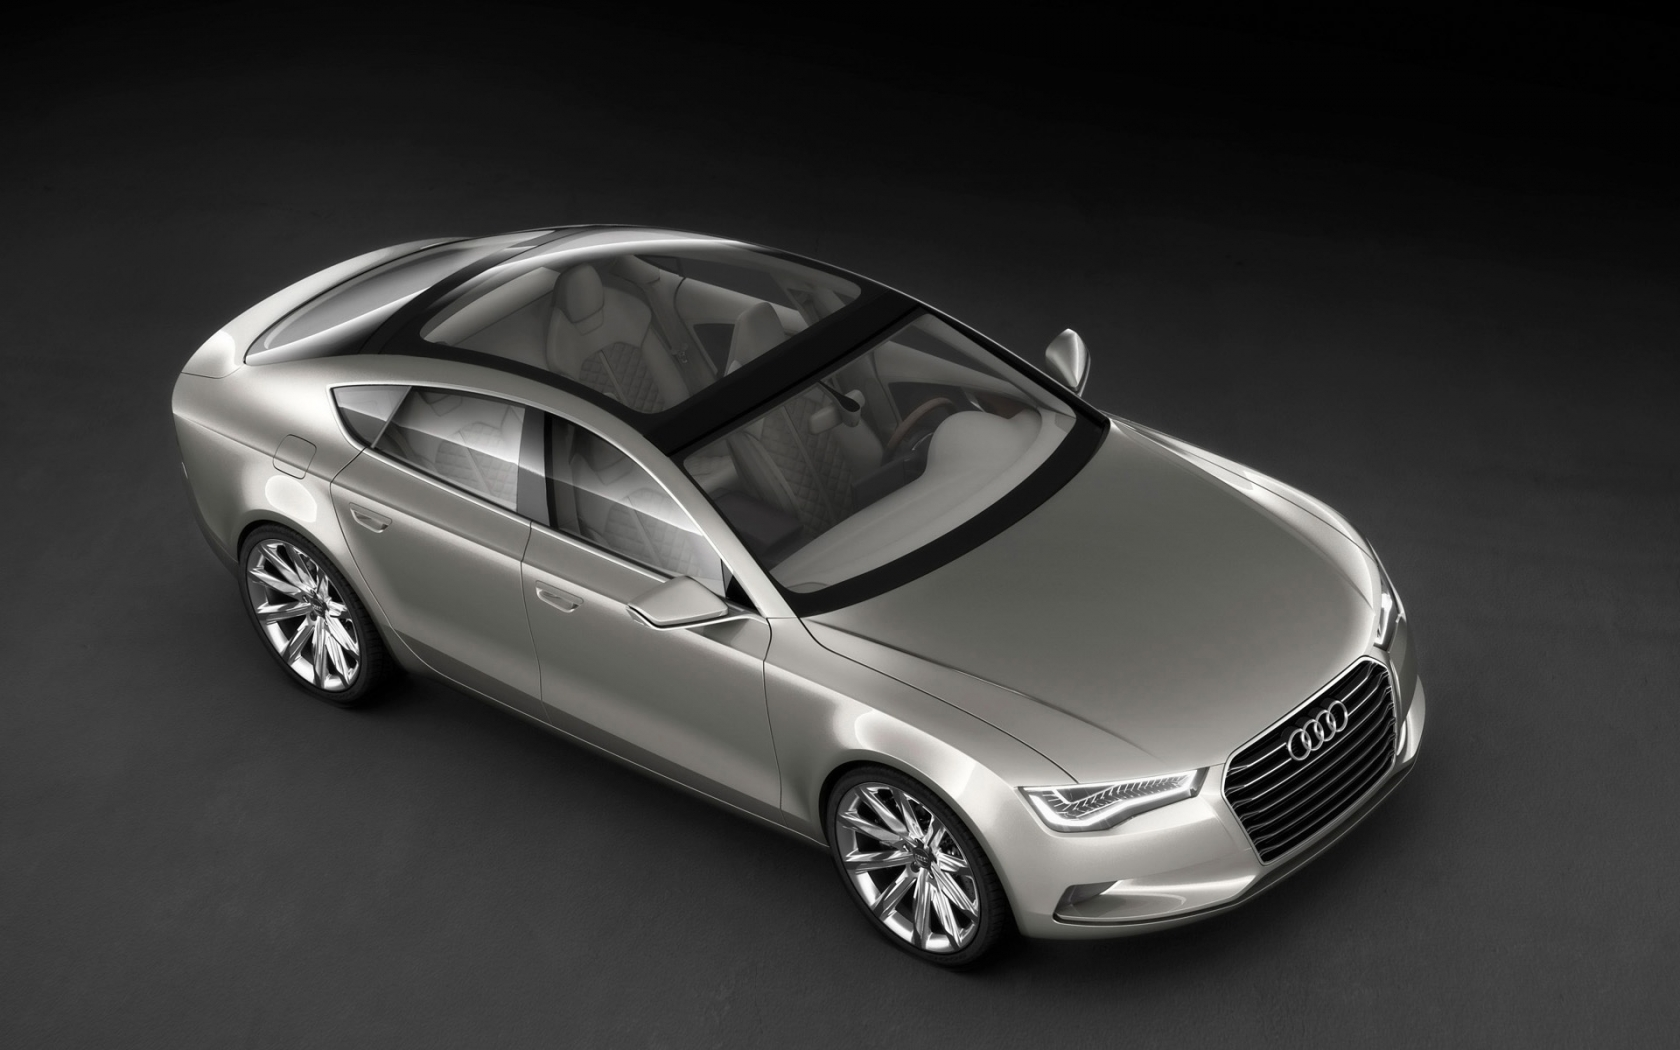 2009 Audi Sportback Concept - Front And Side Top for 1680 x 1050 widescreen resolution